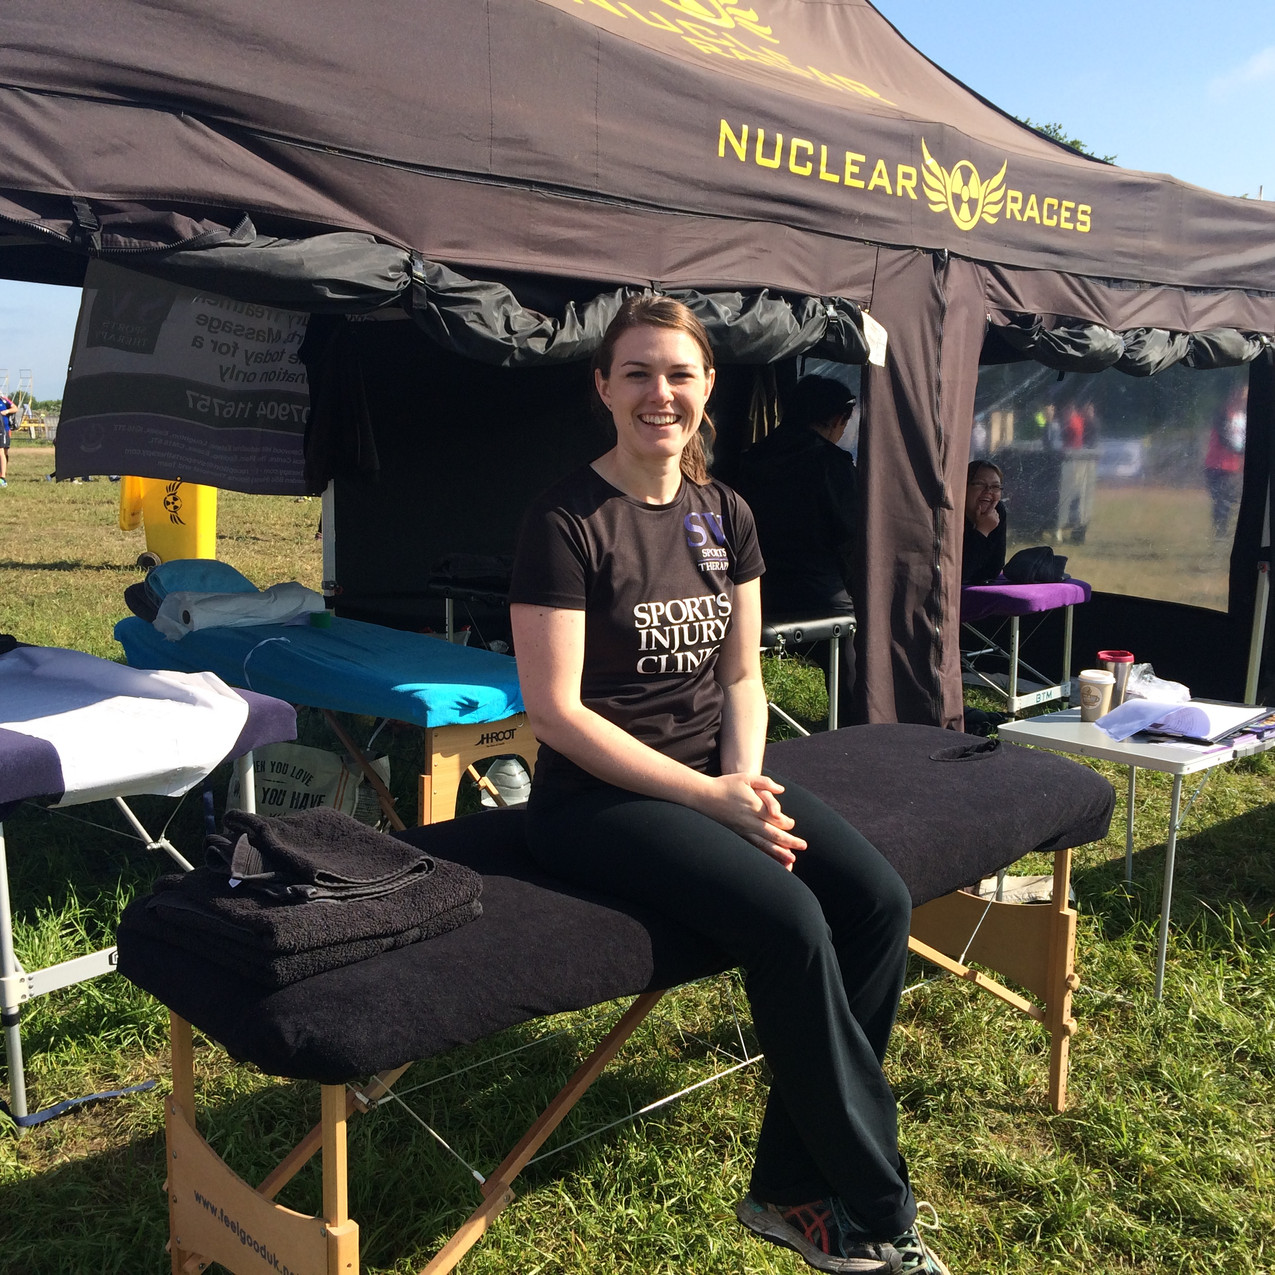 SV at Nuclear Races